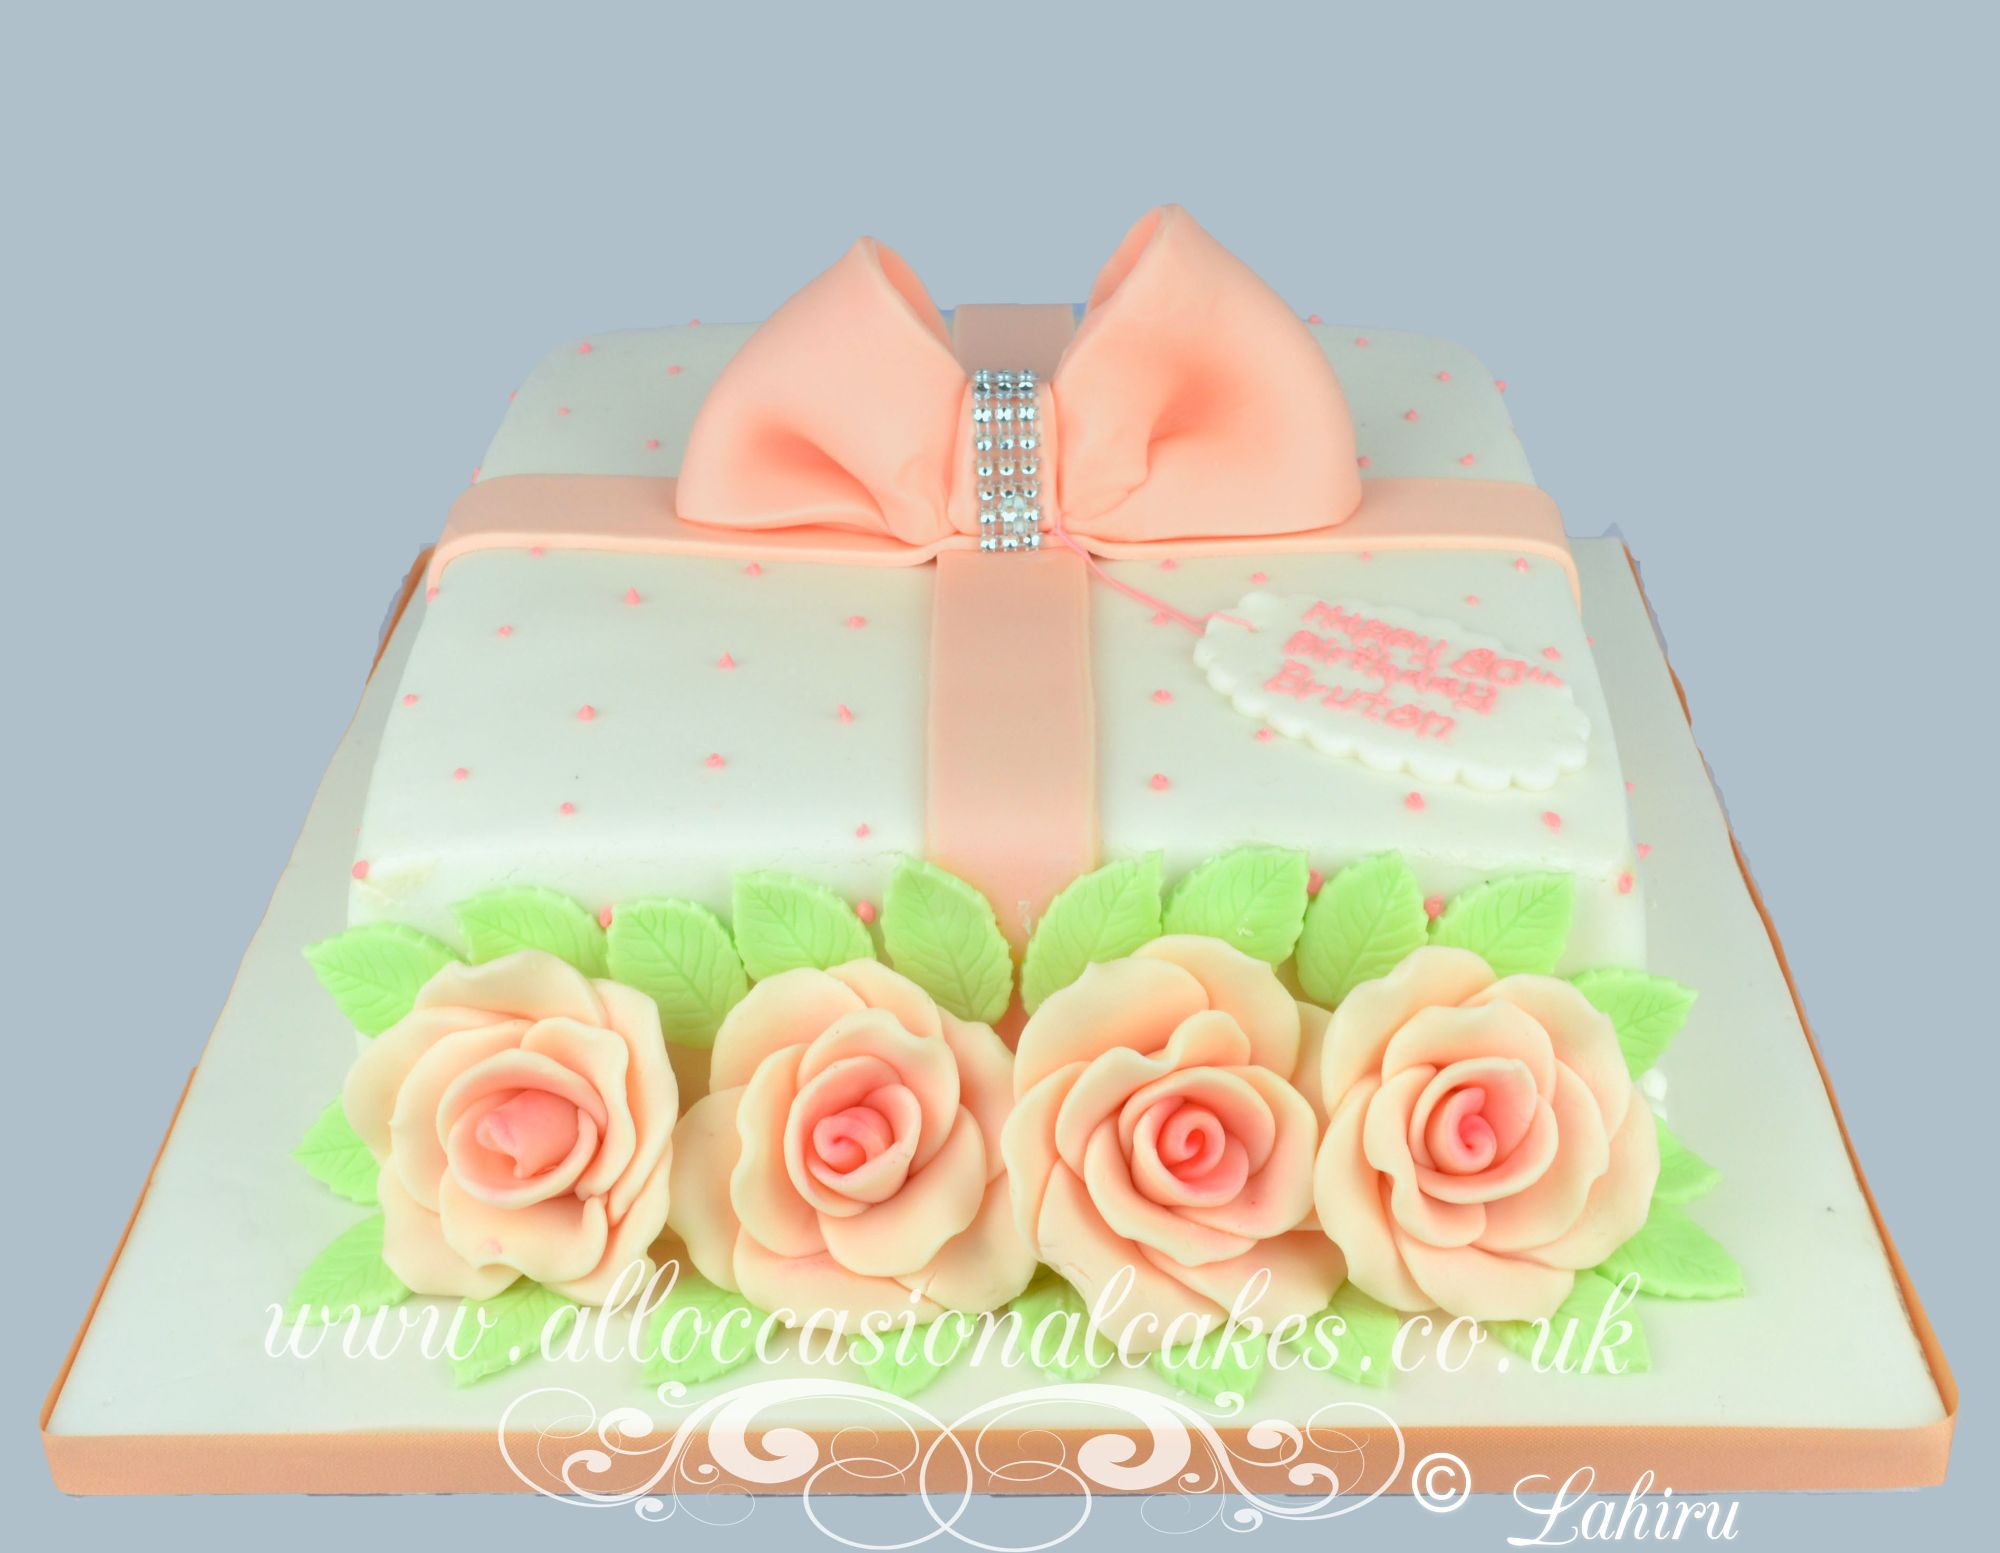 peach rose parcel birthday cake for women